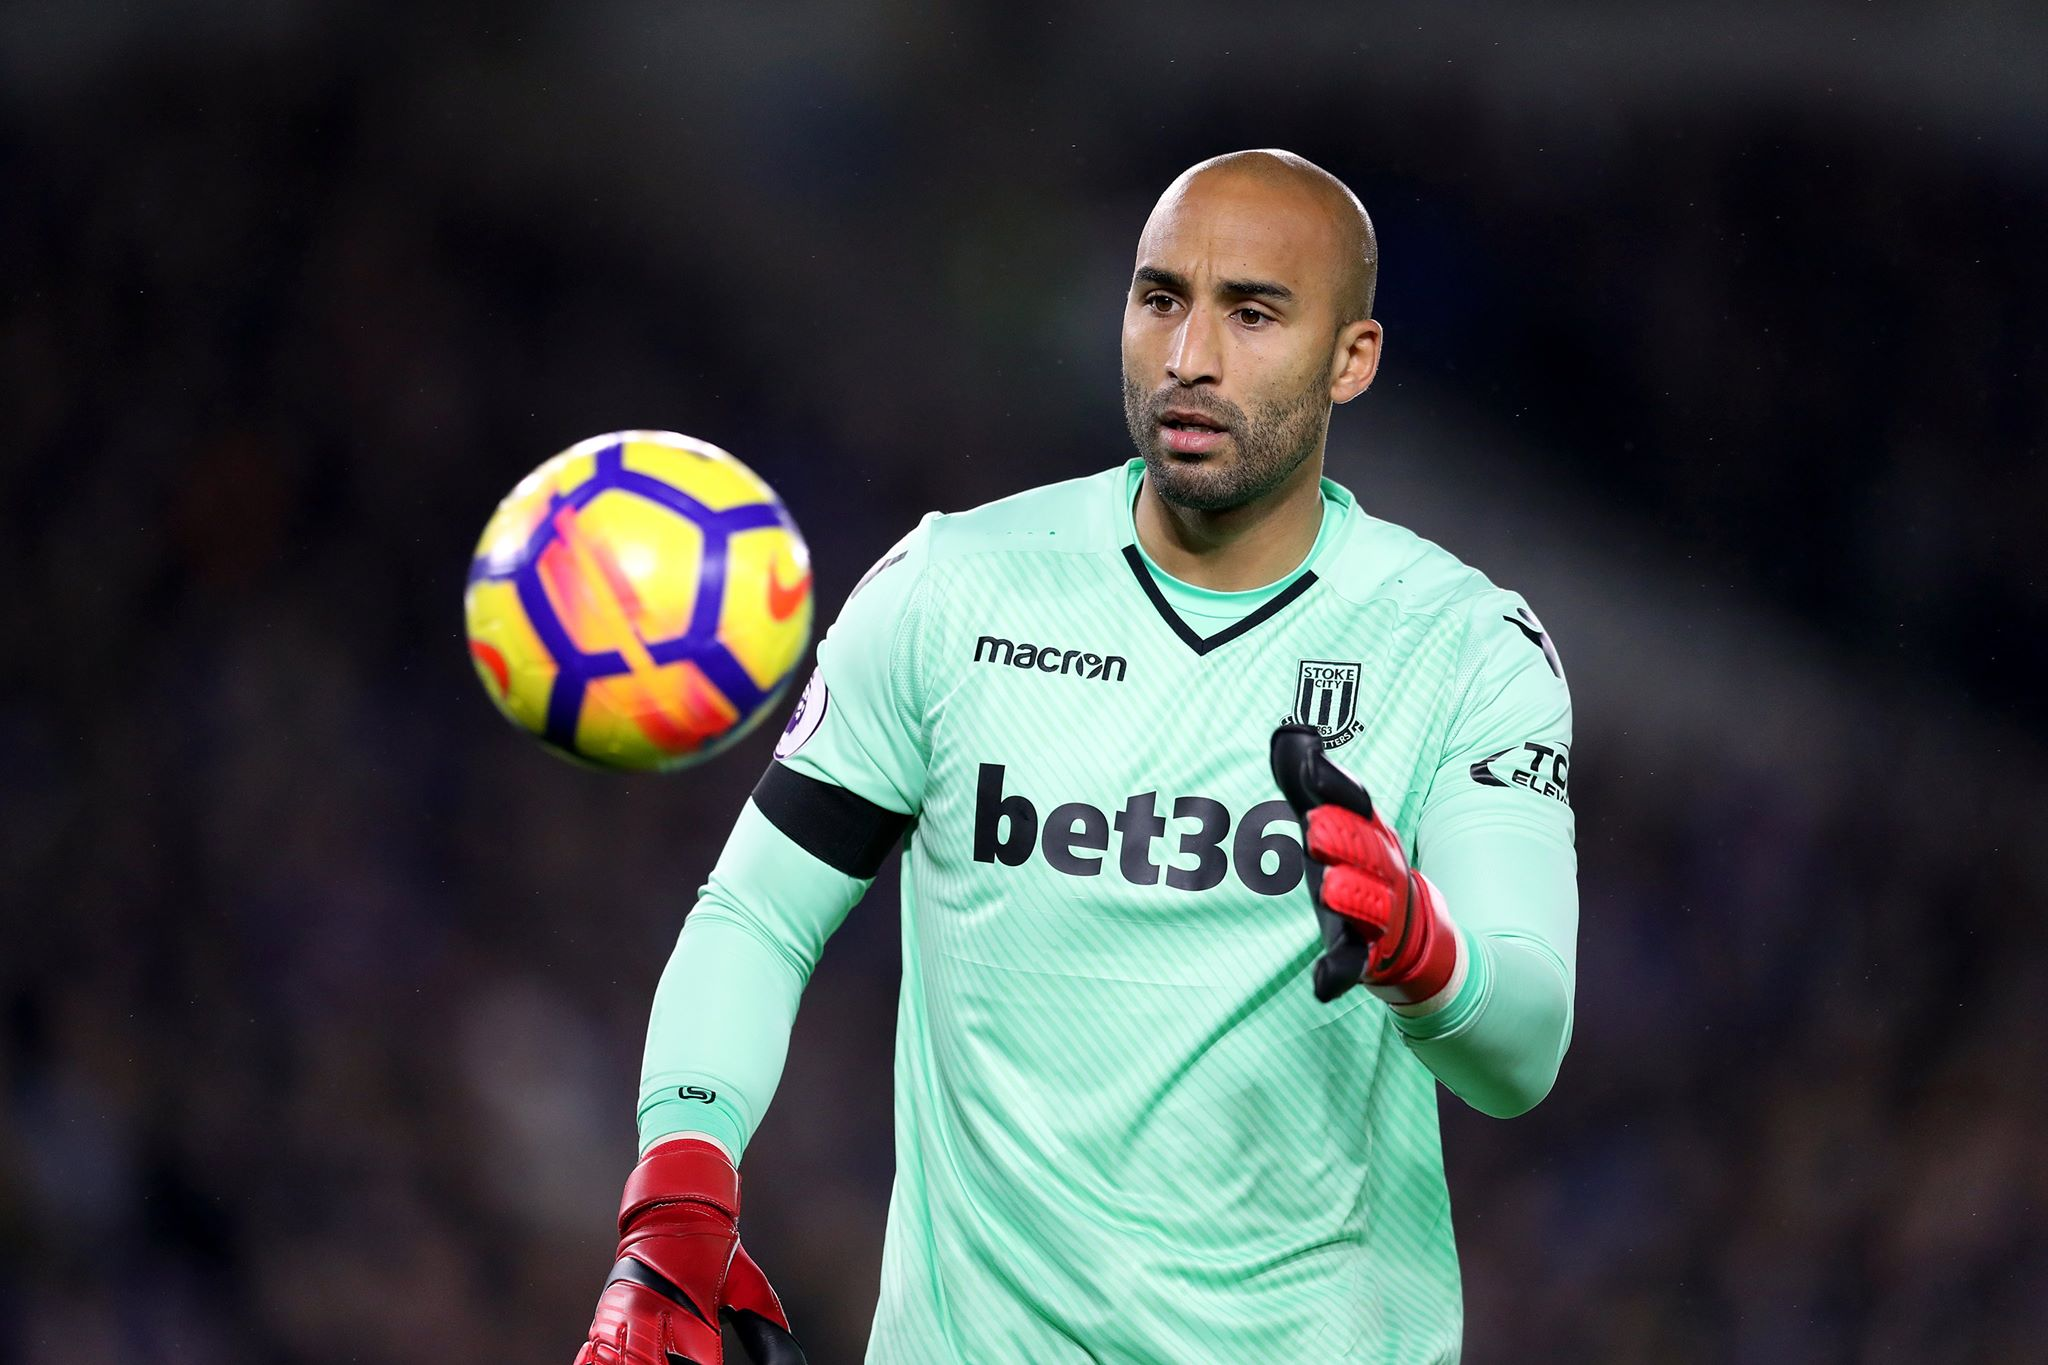 Man Utd complete signing of Lee Grant from Stoke